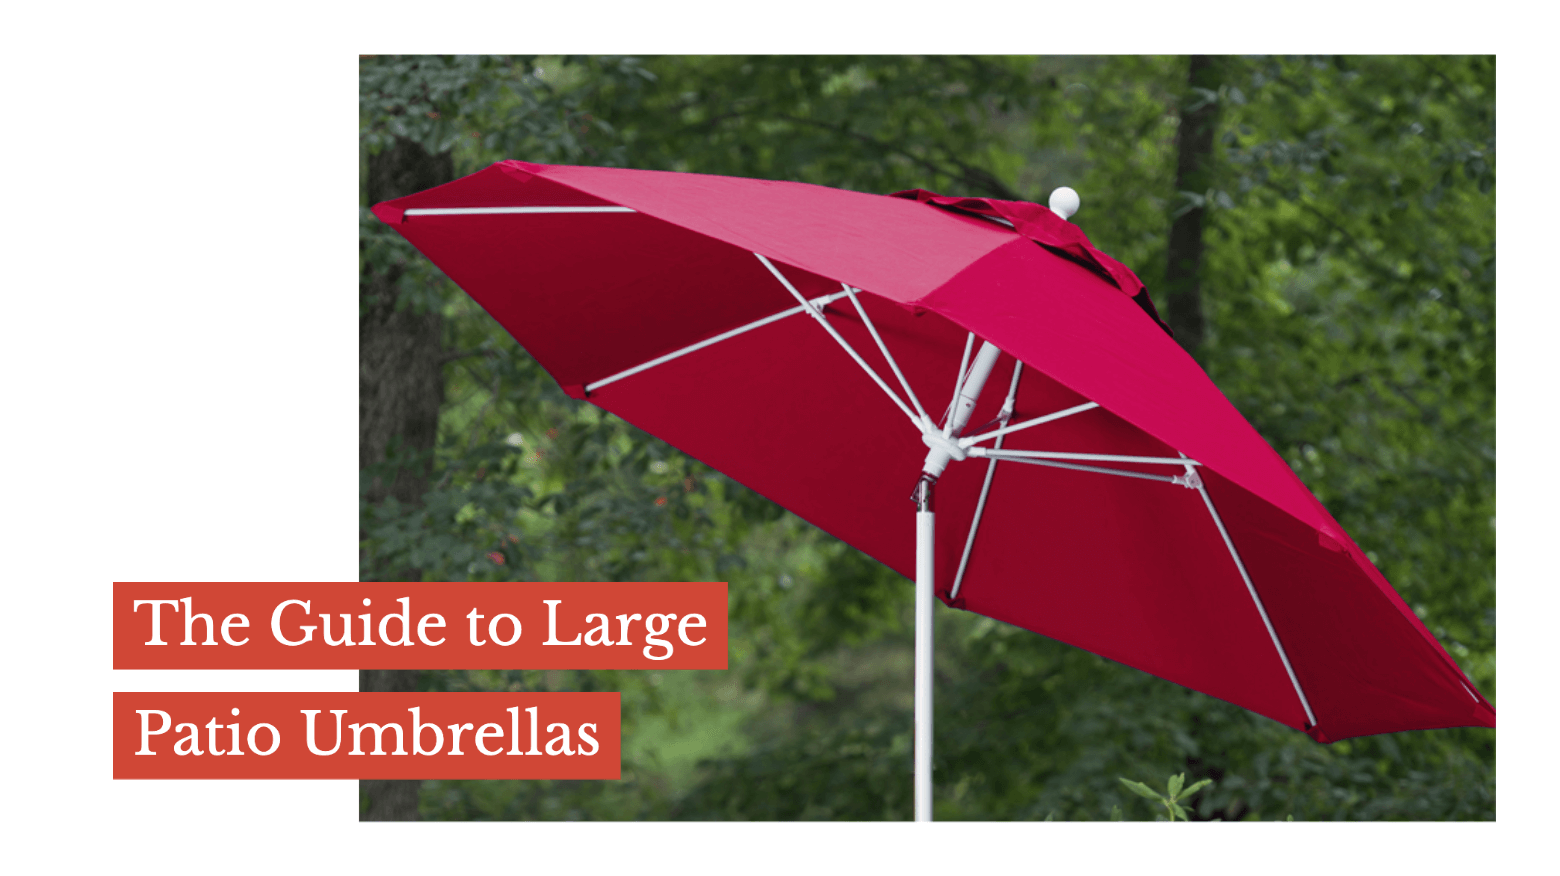 The Guide to Large Patio Umbrellas